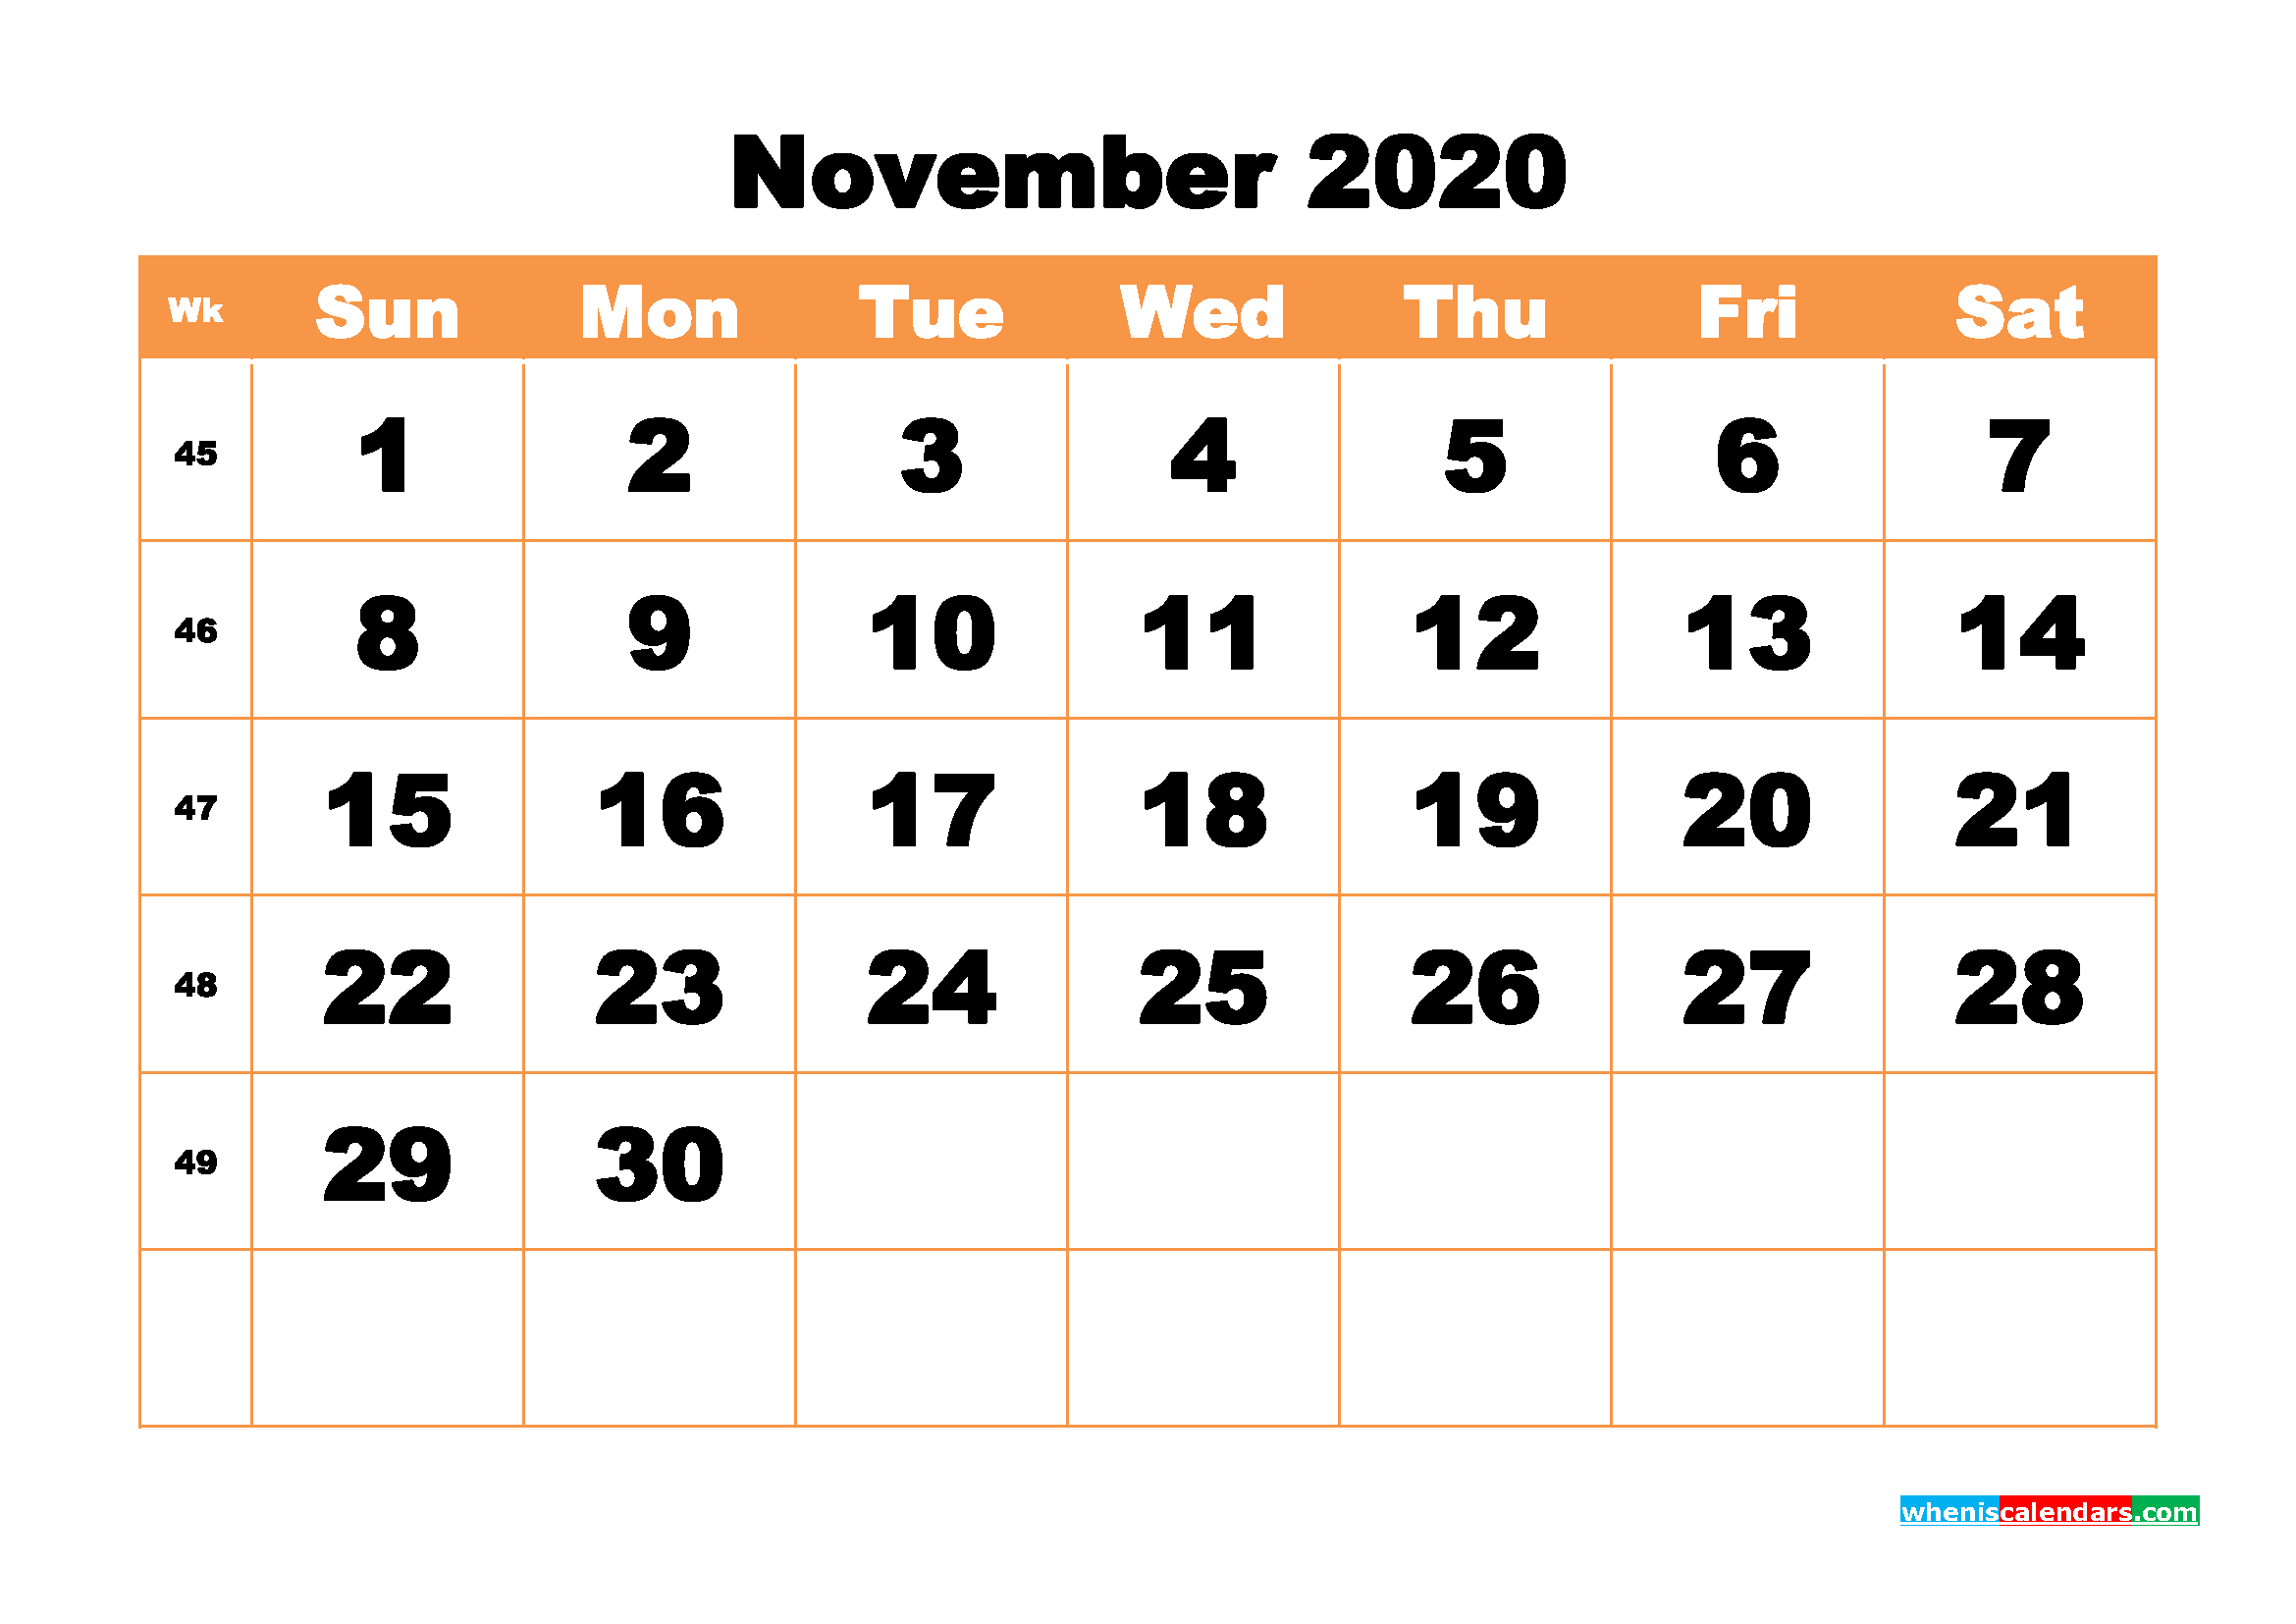 Free Printable Calendar November 2020 PDF, Word - No.m20b443